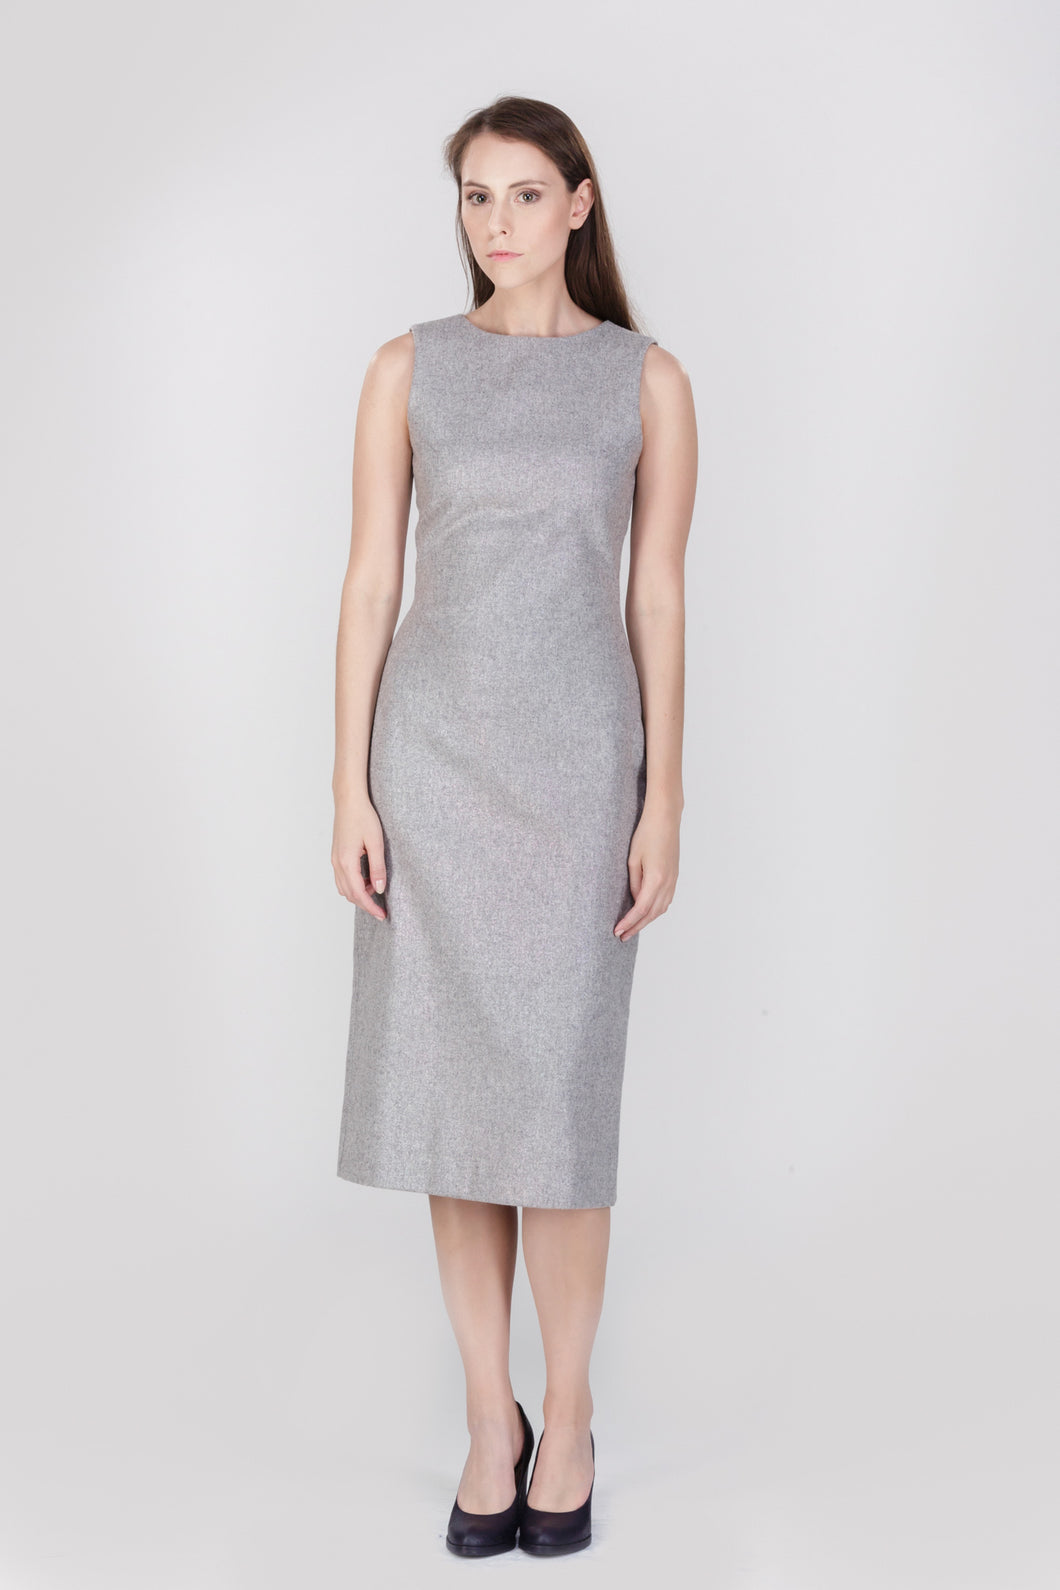 DAMUR - 001 - Dress - Woman